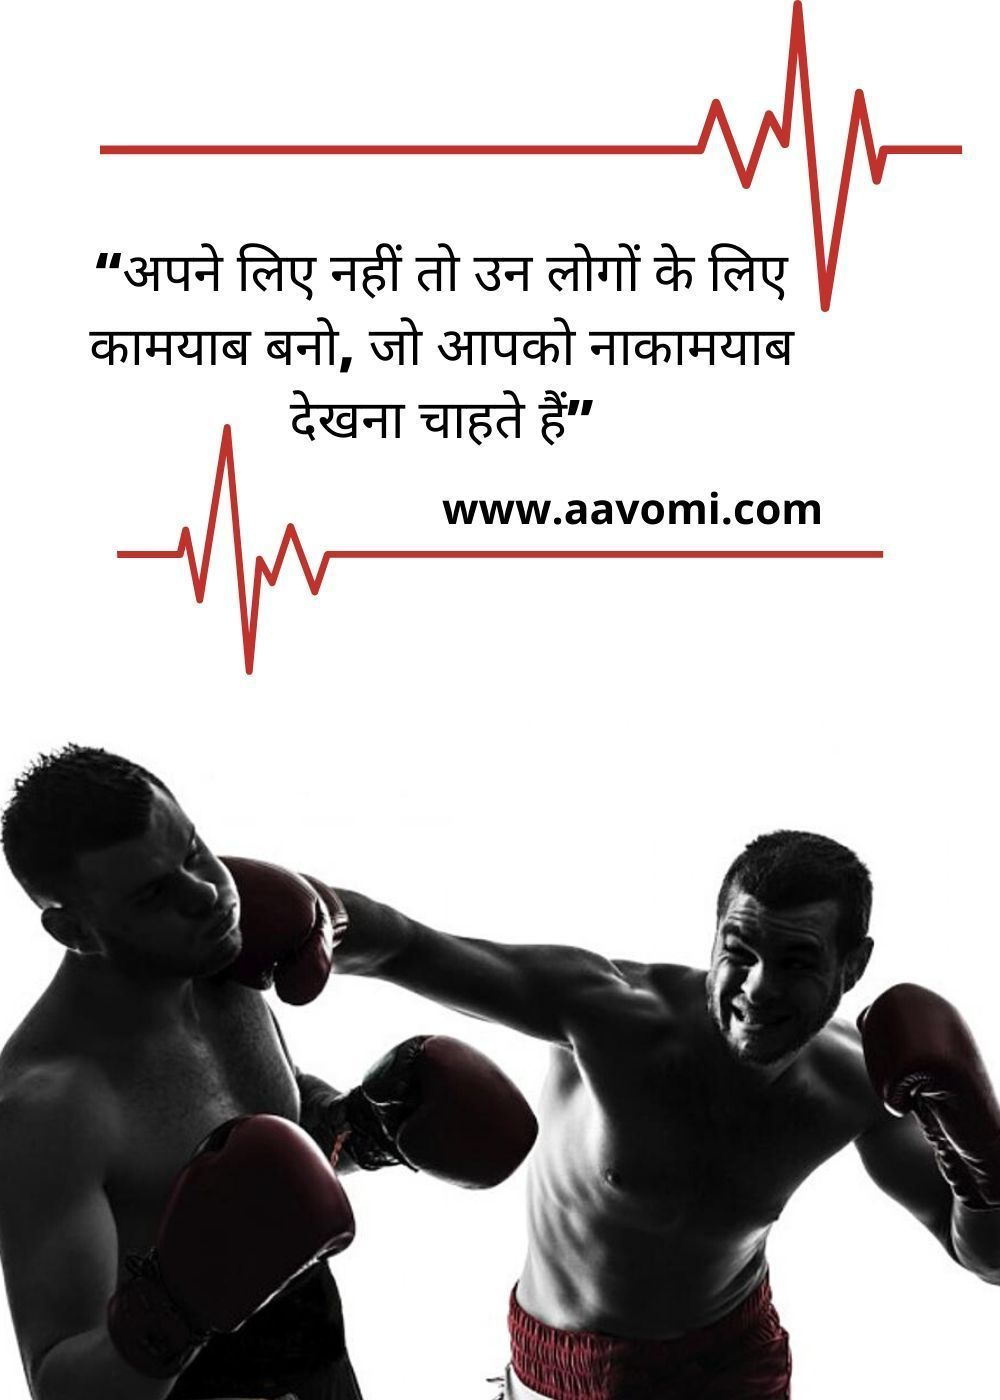 #hindi in 2020 | motivational quotes for success career